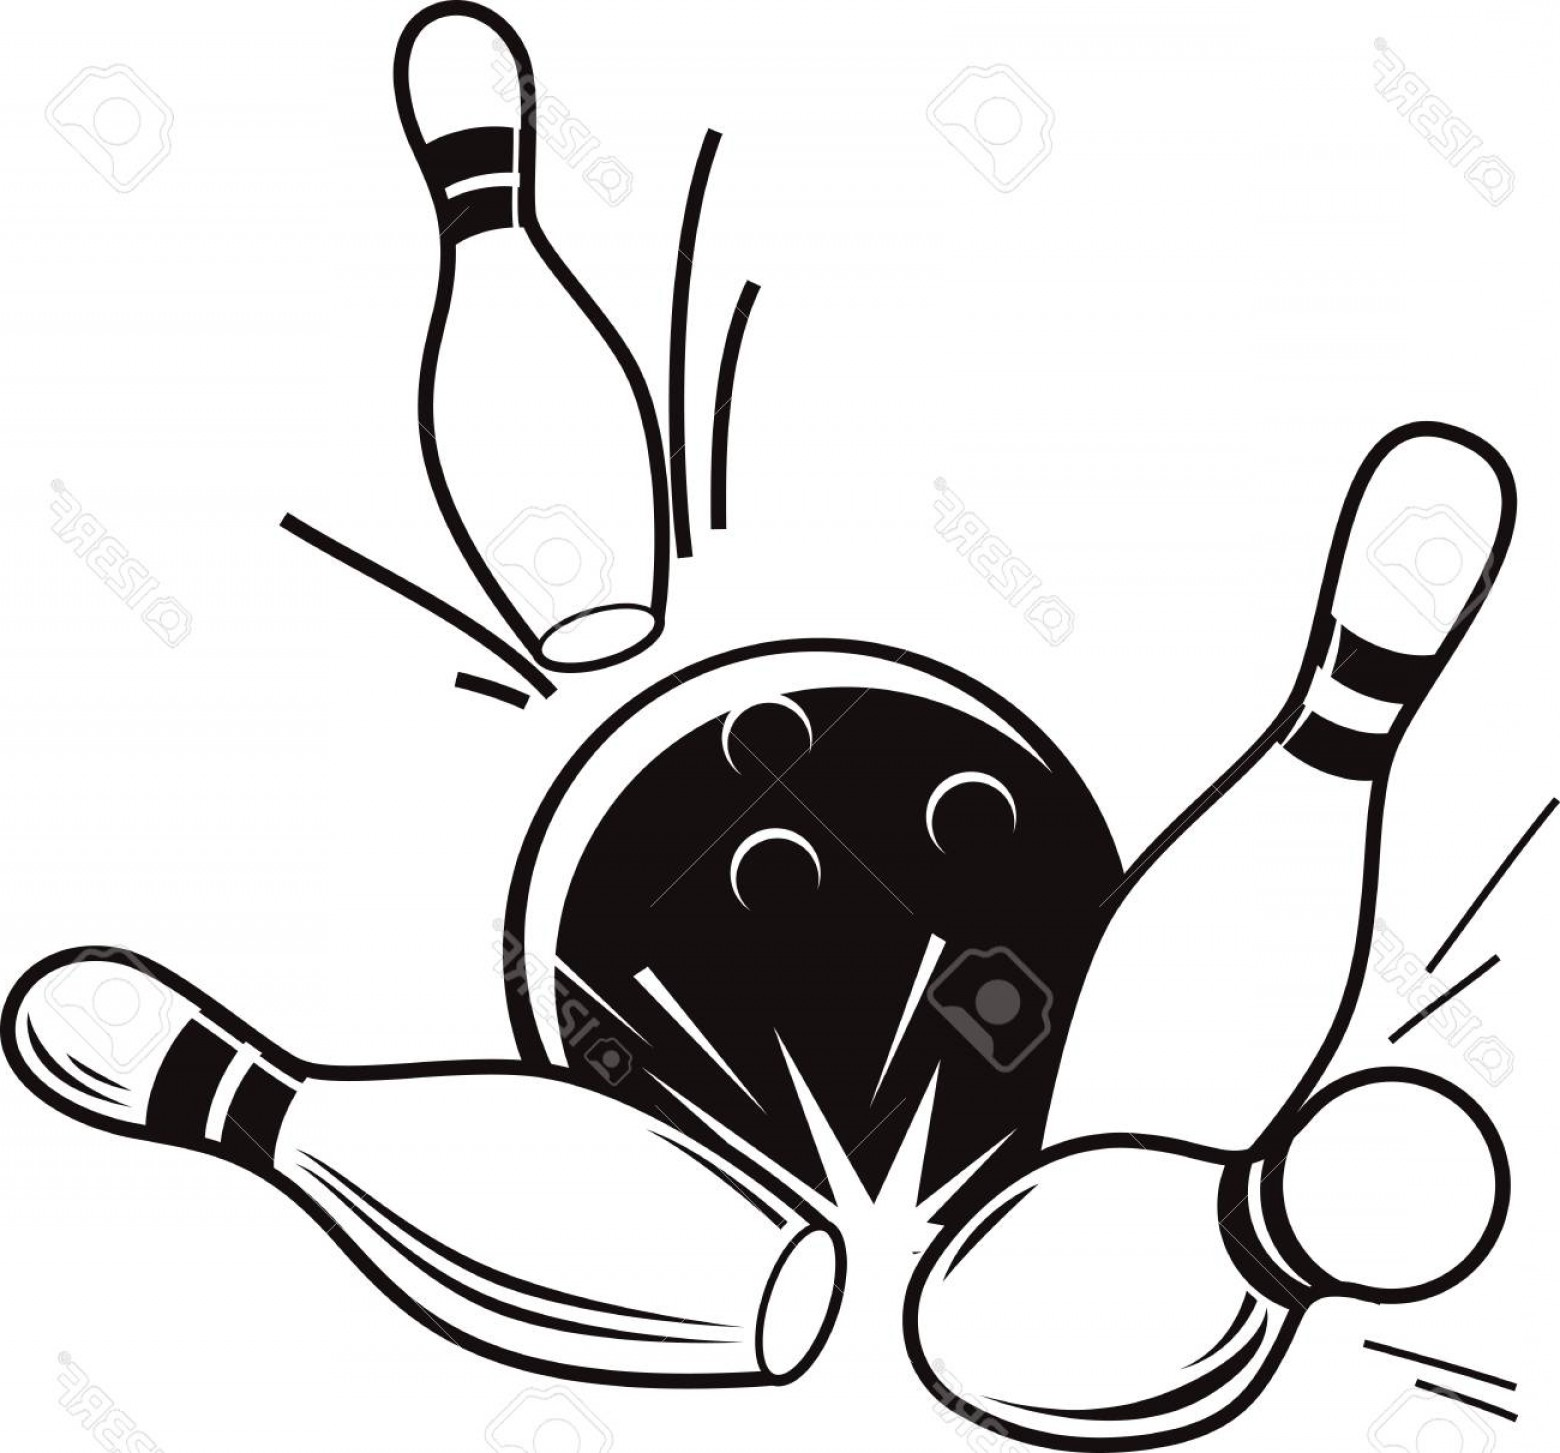 Bowling ball and pins black and white clipart clip art royalty free download Photostock Vector Vector Black And White Illustration Of Bowling ... clip art royalty free download